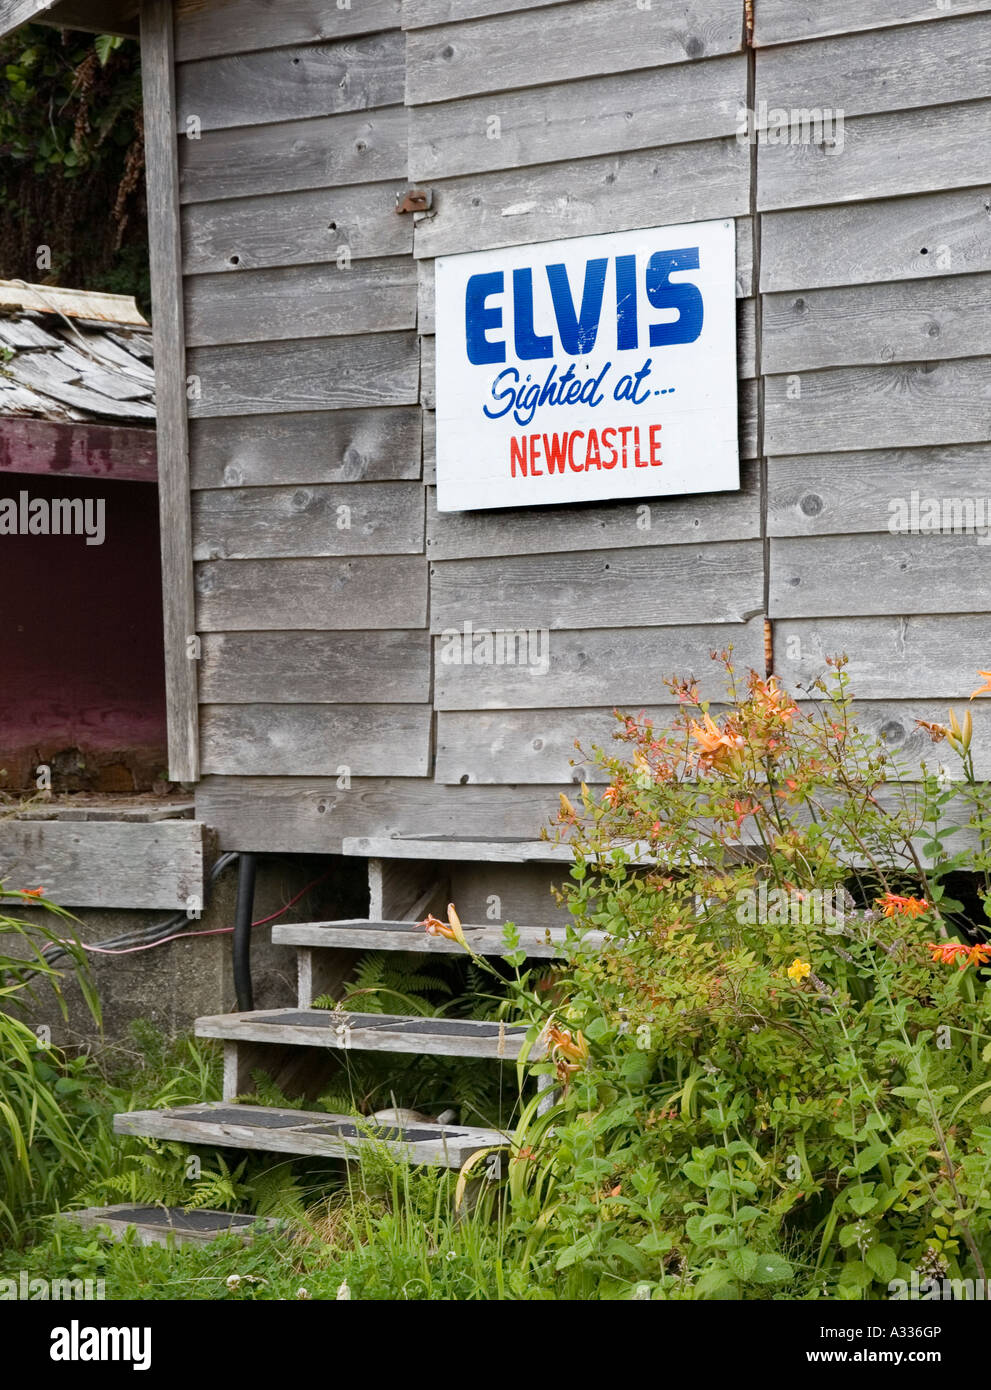 Elvis sighted at Newcastle sign nailed to shed door Bamfield Vancouver island Canada - Stock Image